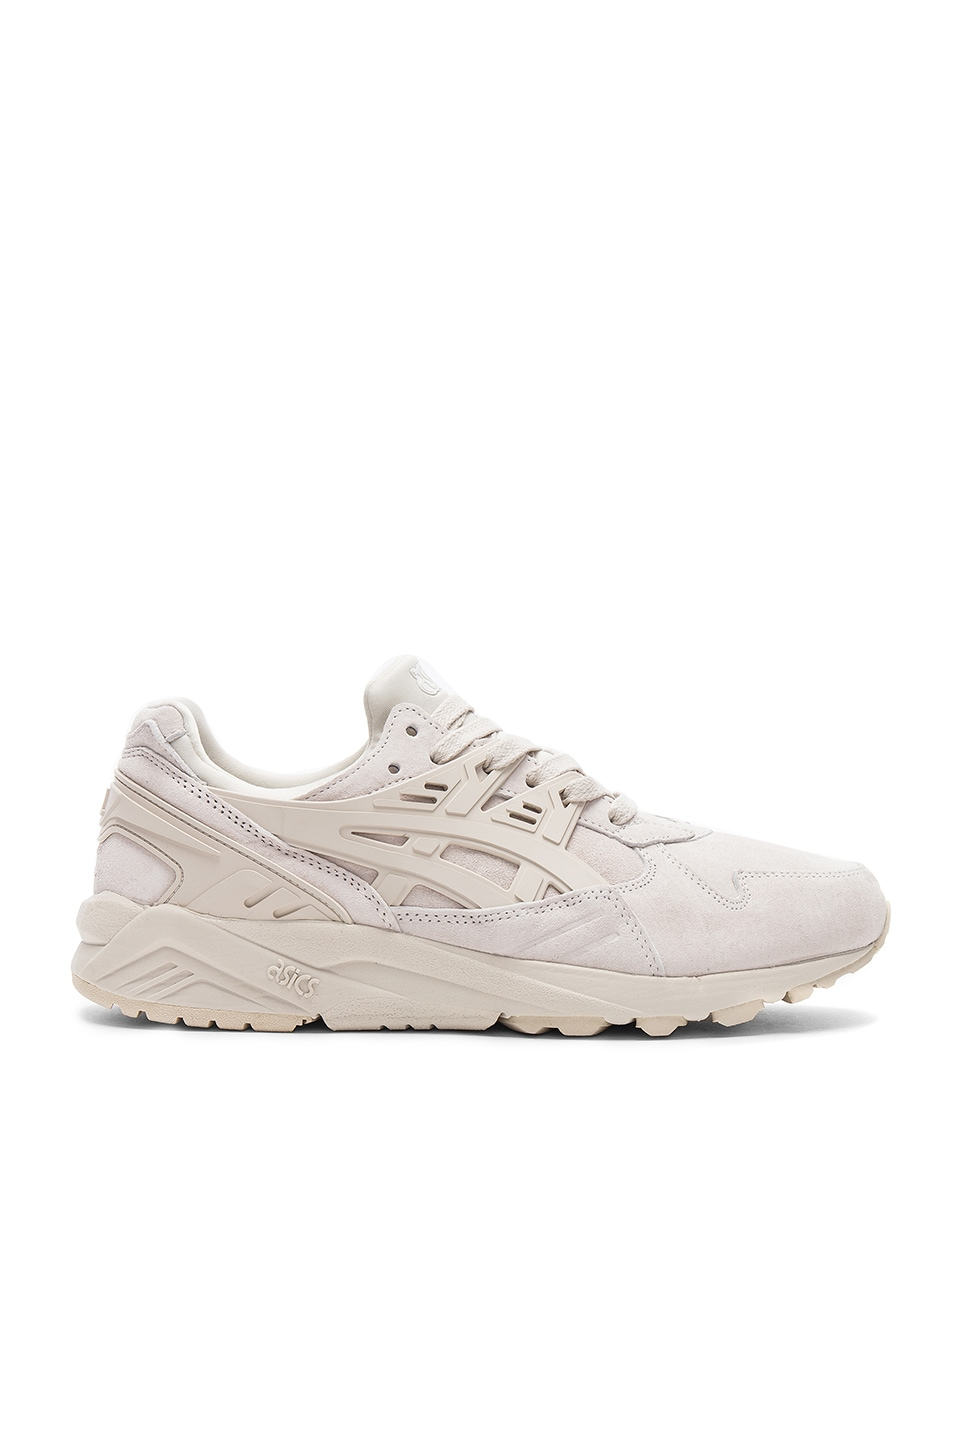 Photo of Gel Kayano Trainer by Asics men clothes